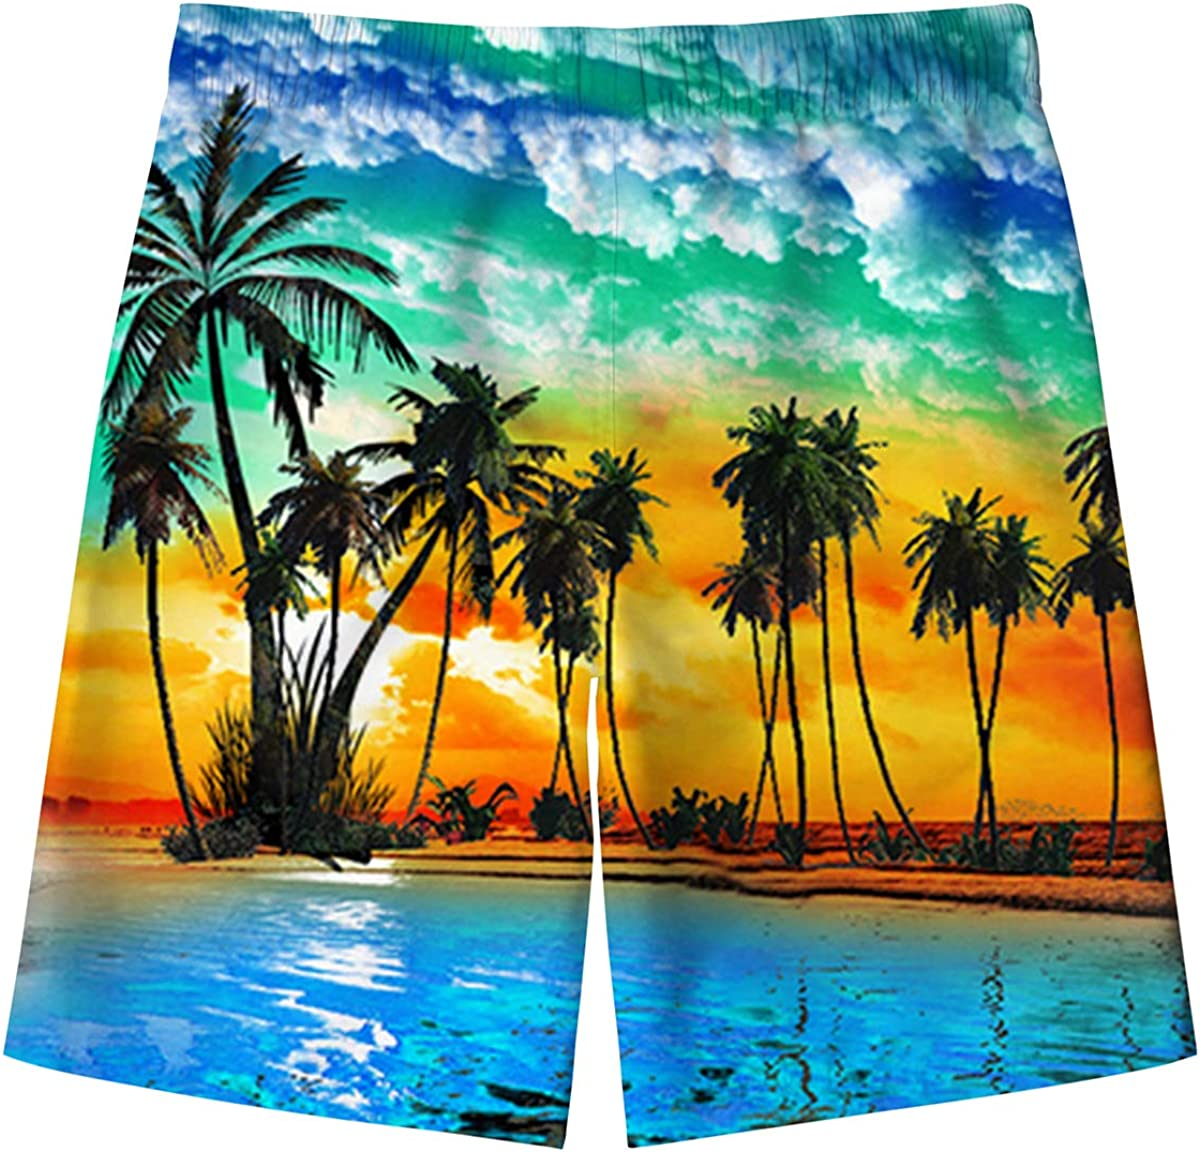 Spreadhoodie Boys Swimming Trunks 3D Printed Hawaiian Teenager Funny Swim Shorts Quick Dry Swimwear Kids Board Trunks with Two Side Pockets 5-16 Years